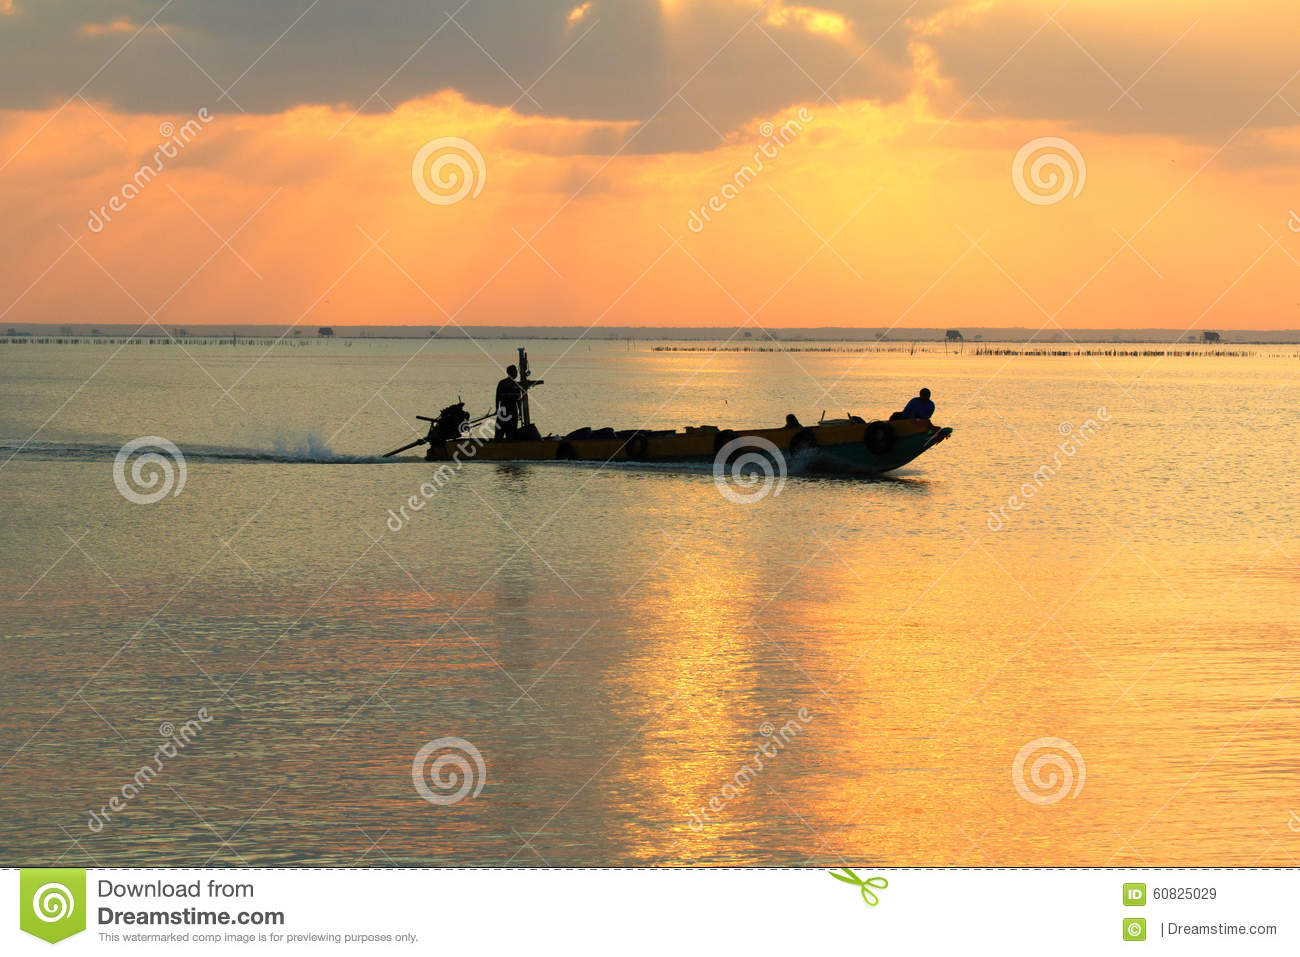 Fishermen on a boat in the morning.